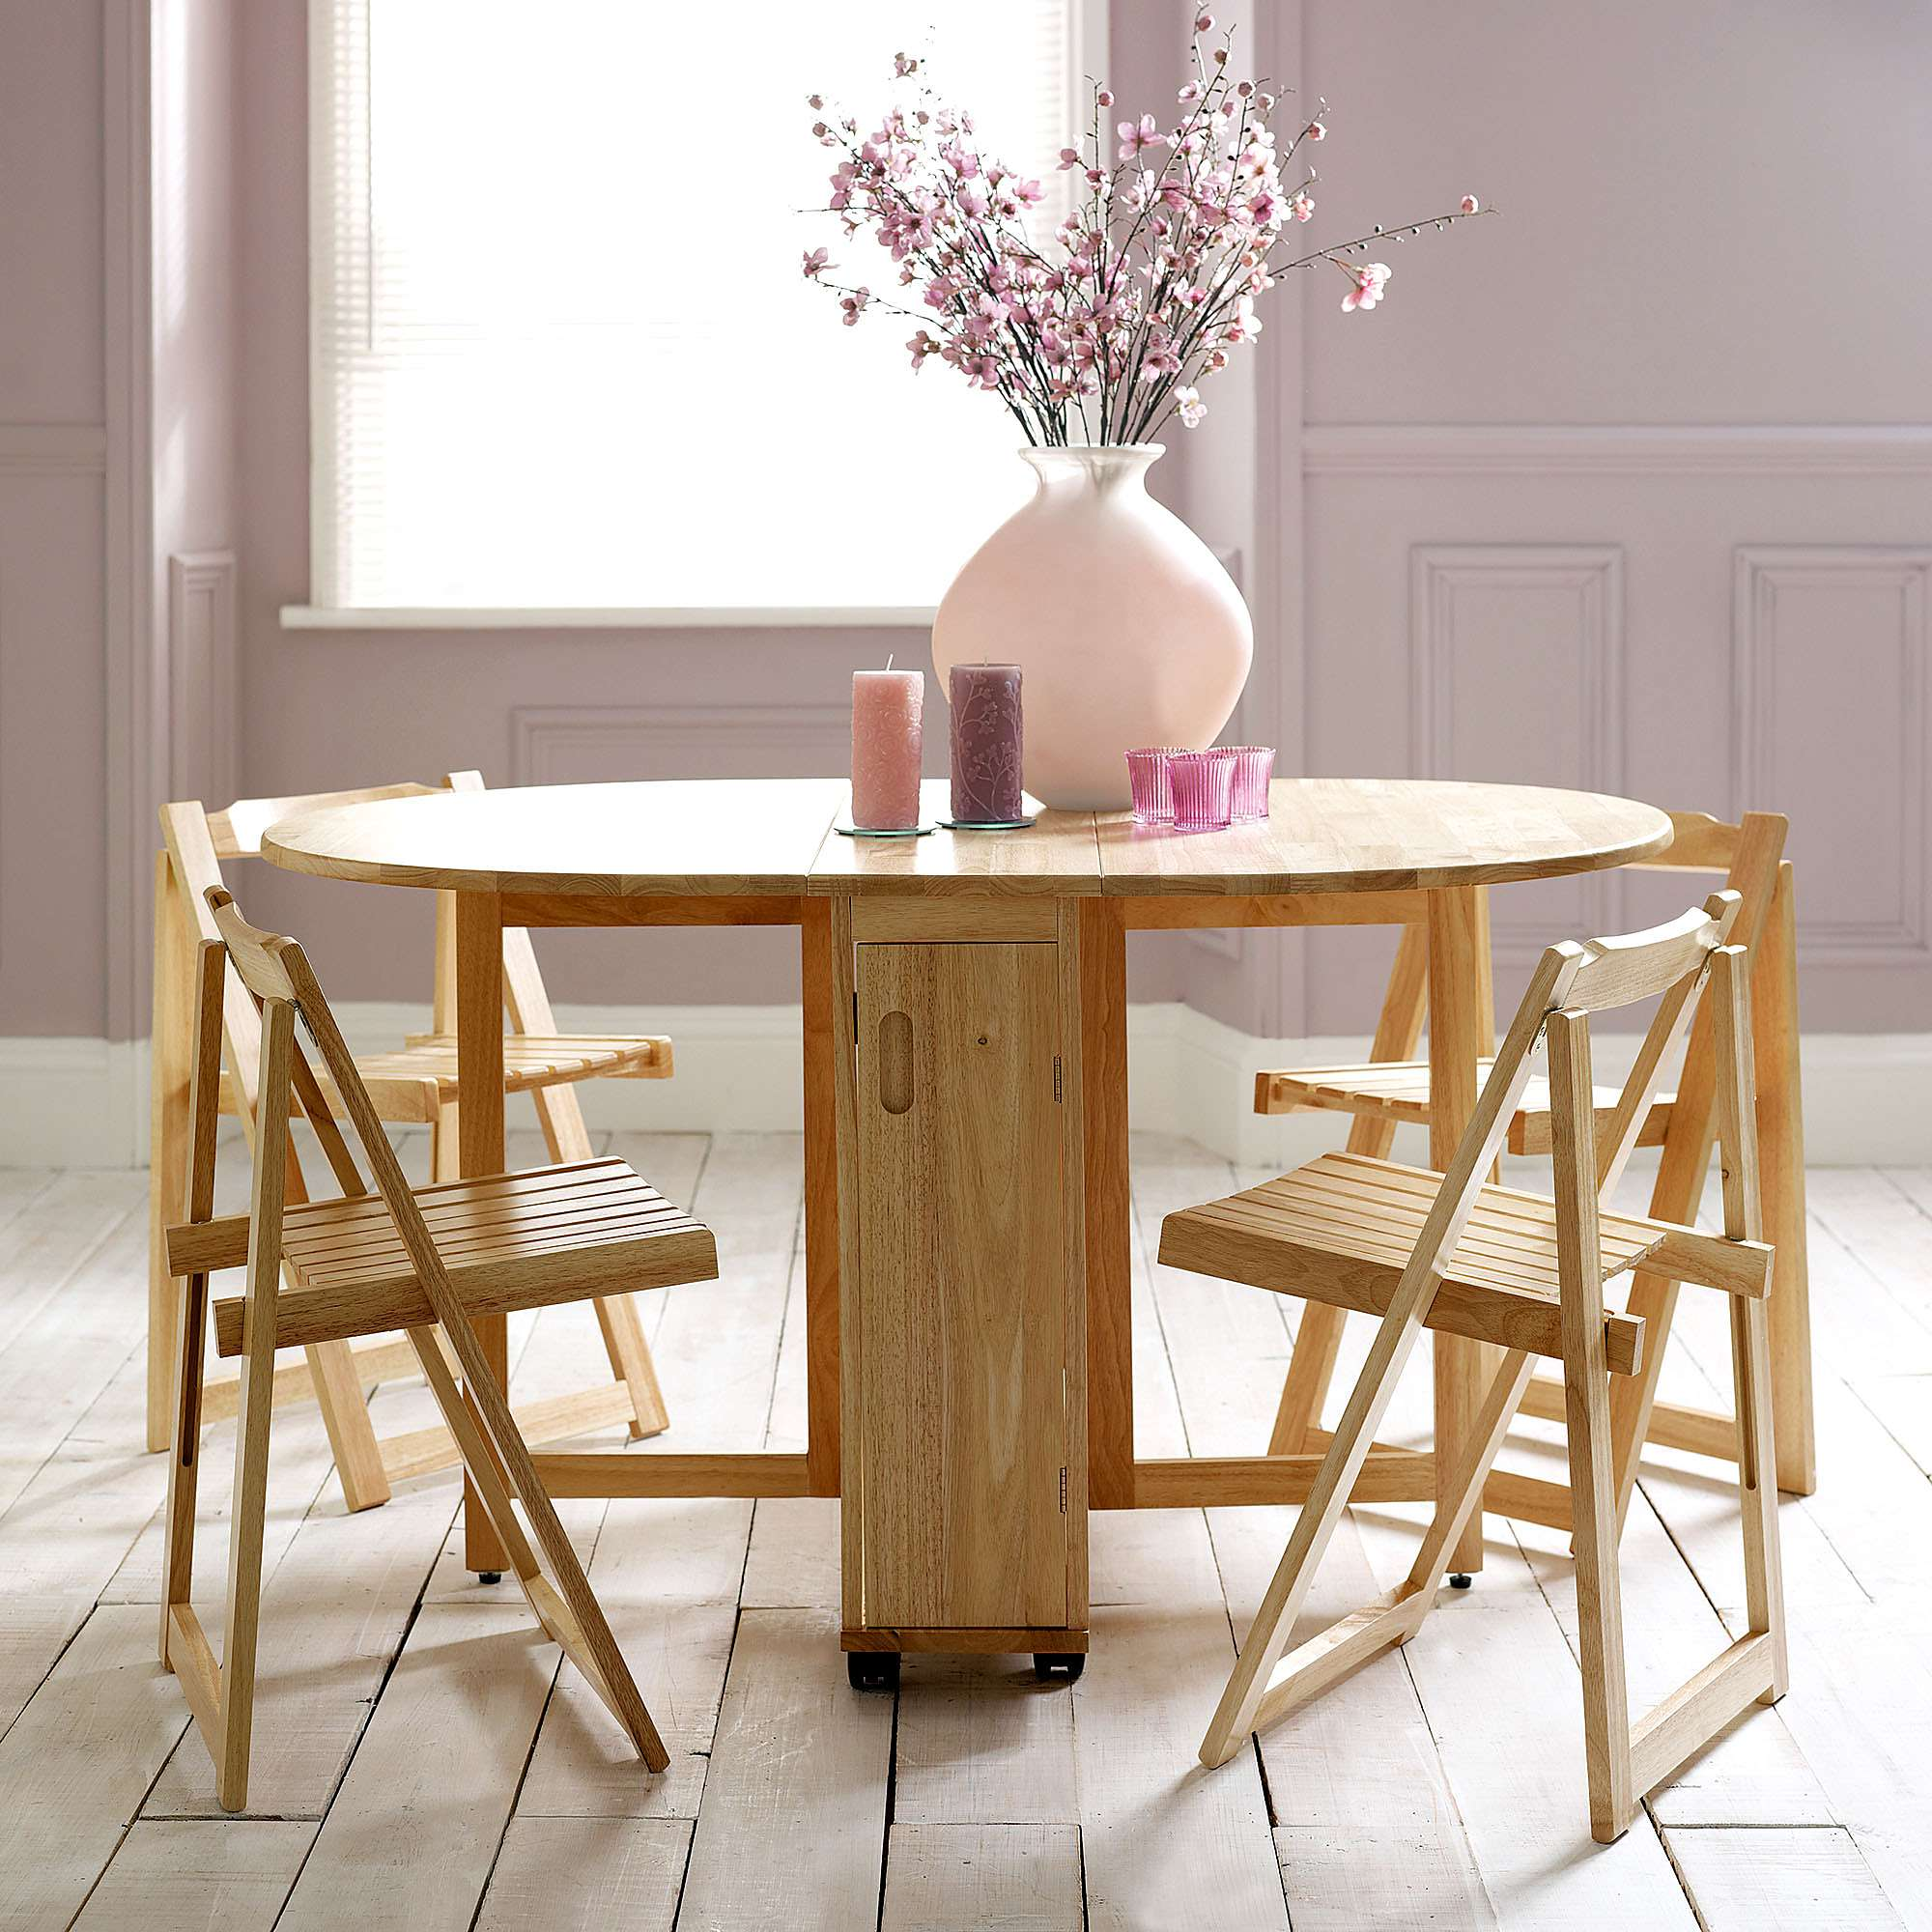 Choose A Folding Dining Table For Small Space Adorable Home